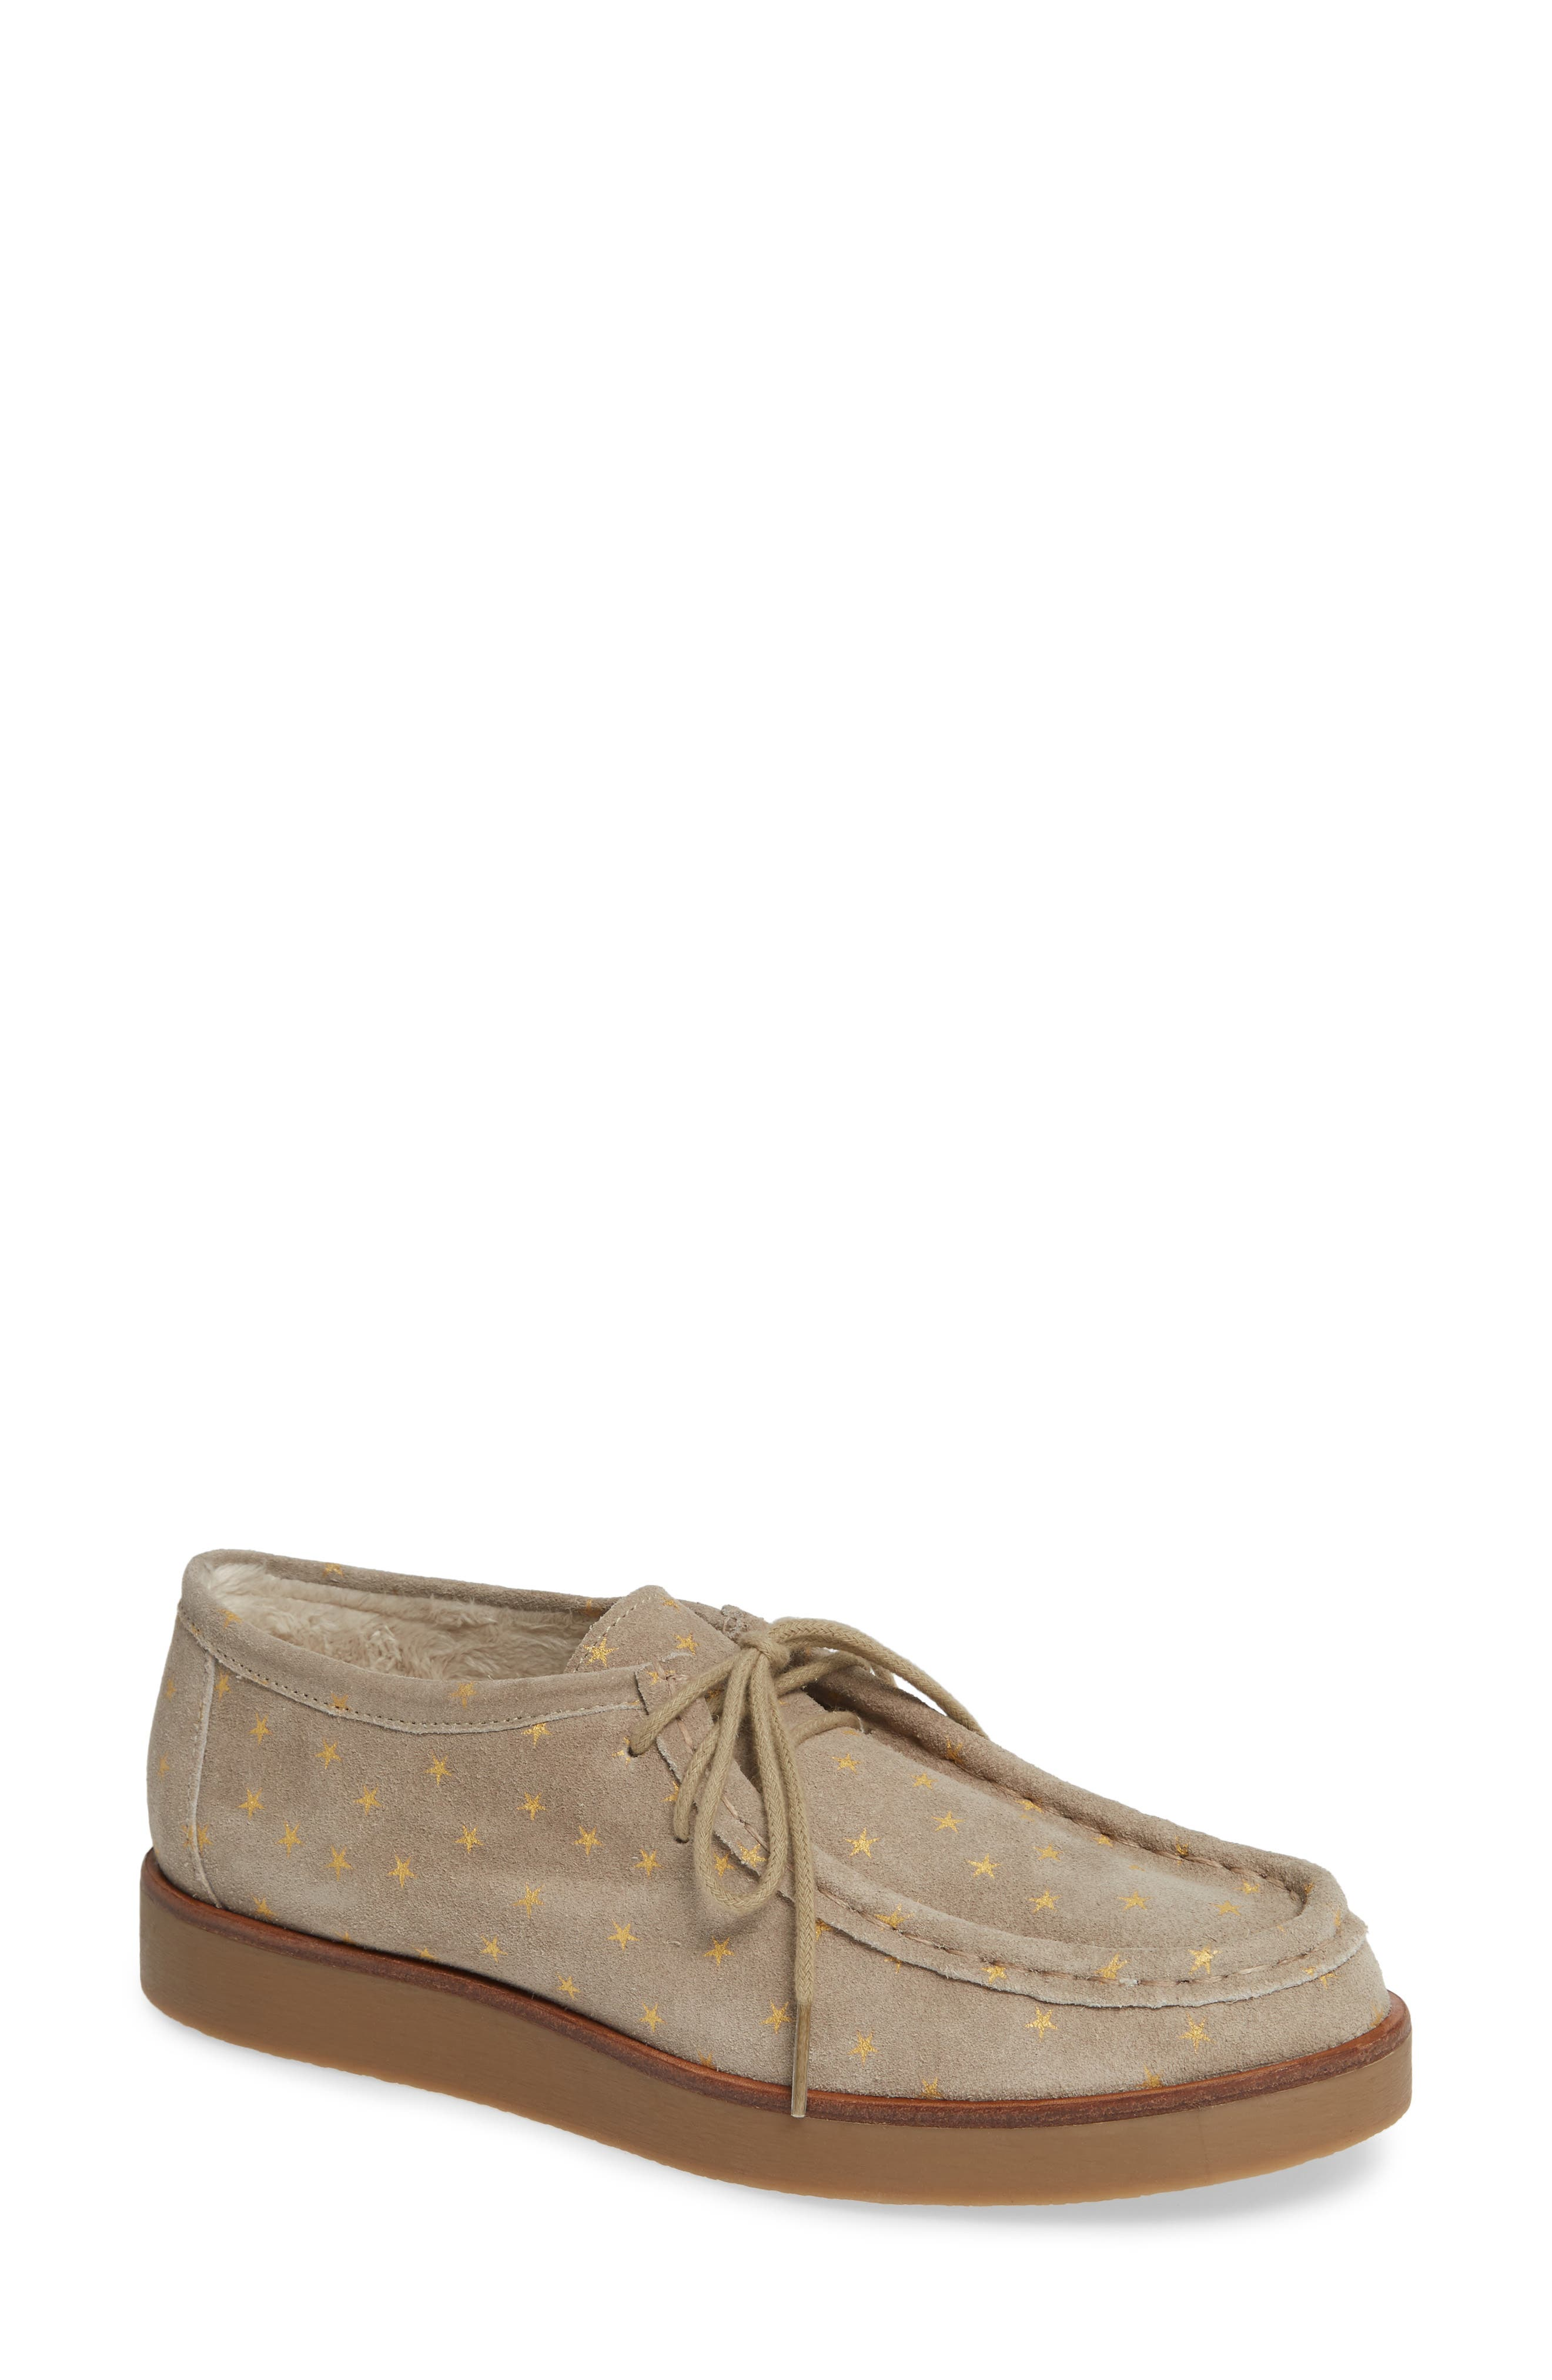 The Scout Star Sneaker in Sand / Gold Stars